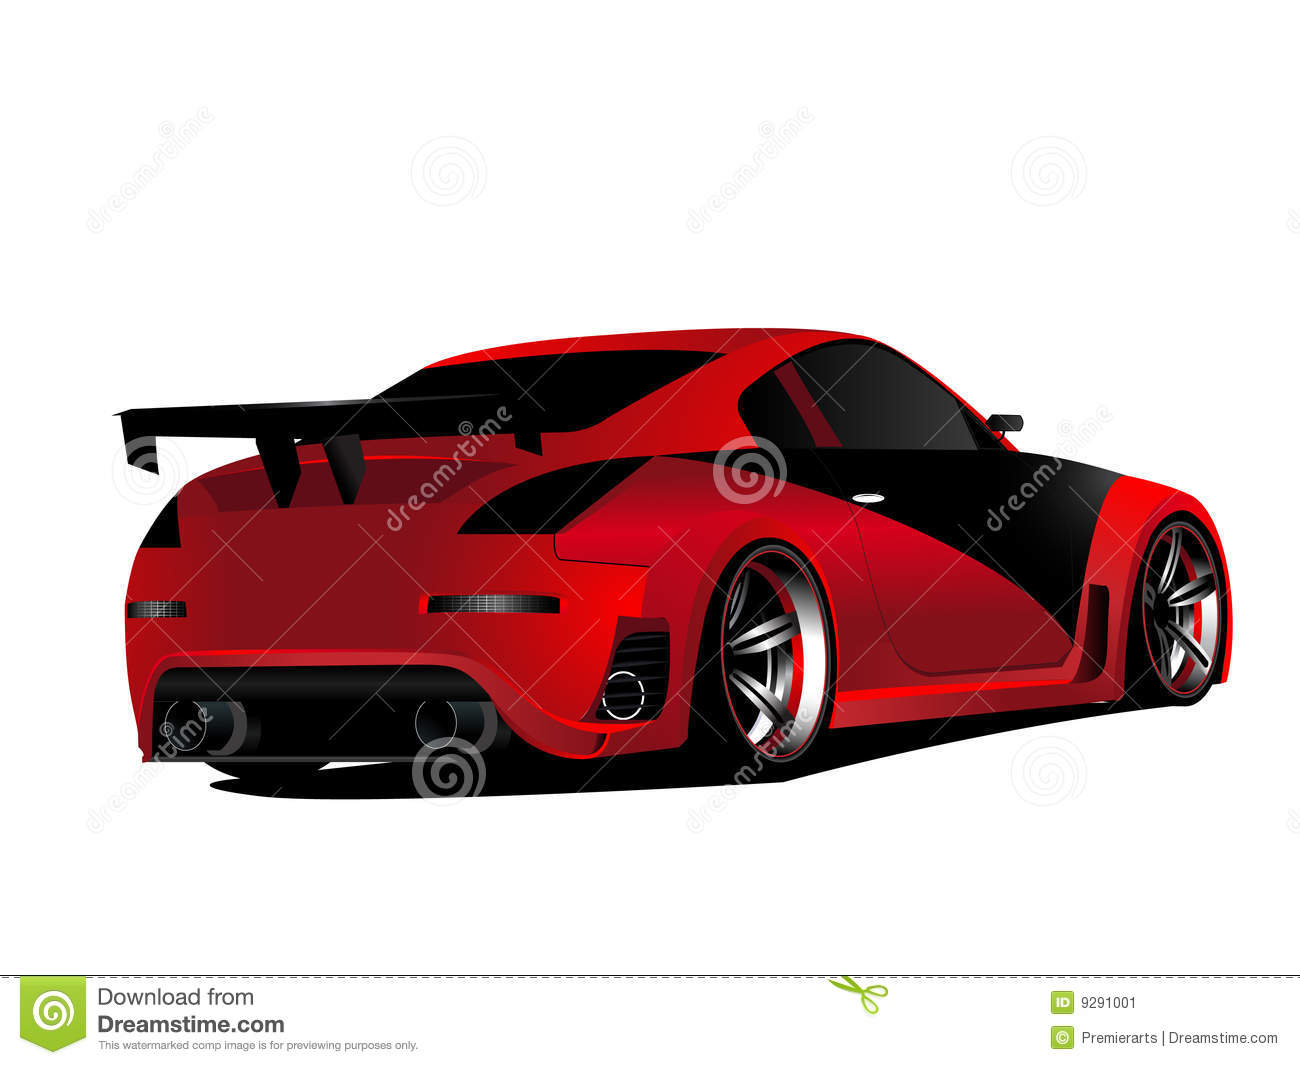 customized red nismo nissan 350z turbo drifting stock illustration illustration of design. Black Bedroom Furniture Sets. Home Design Ideas